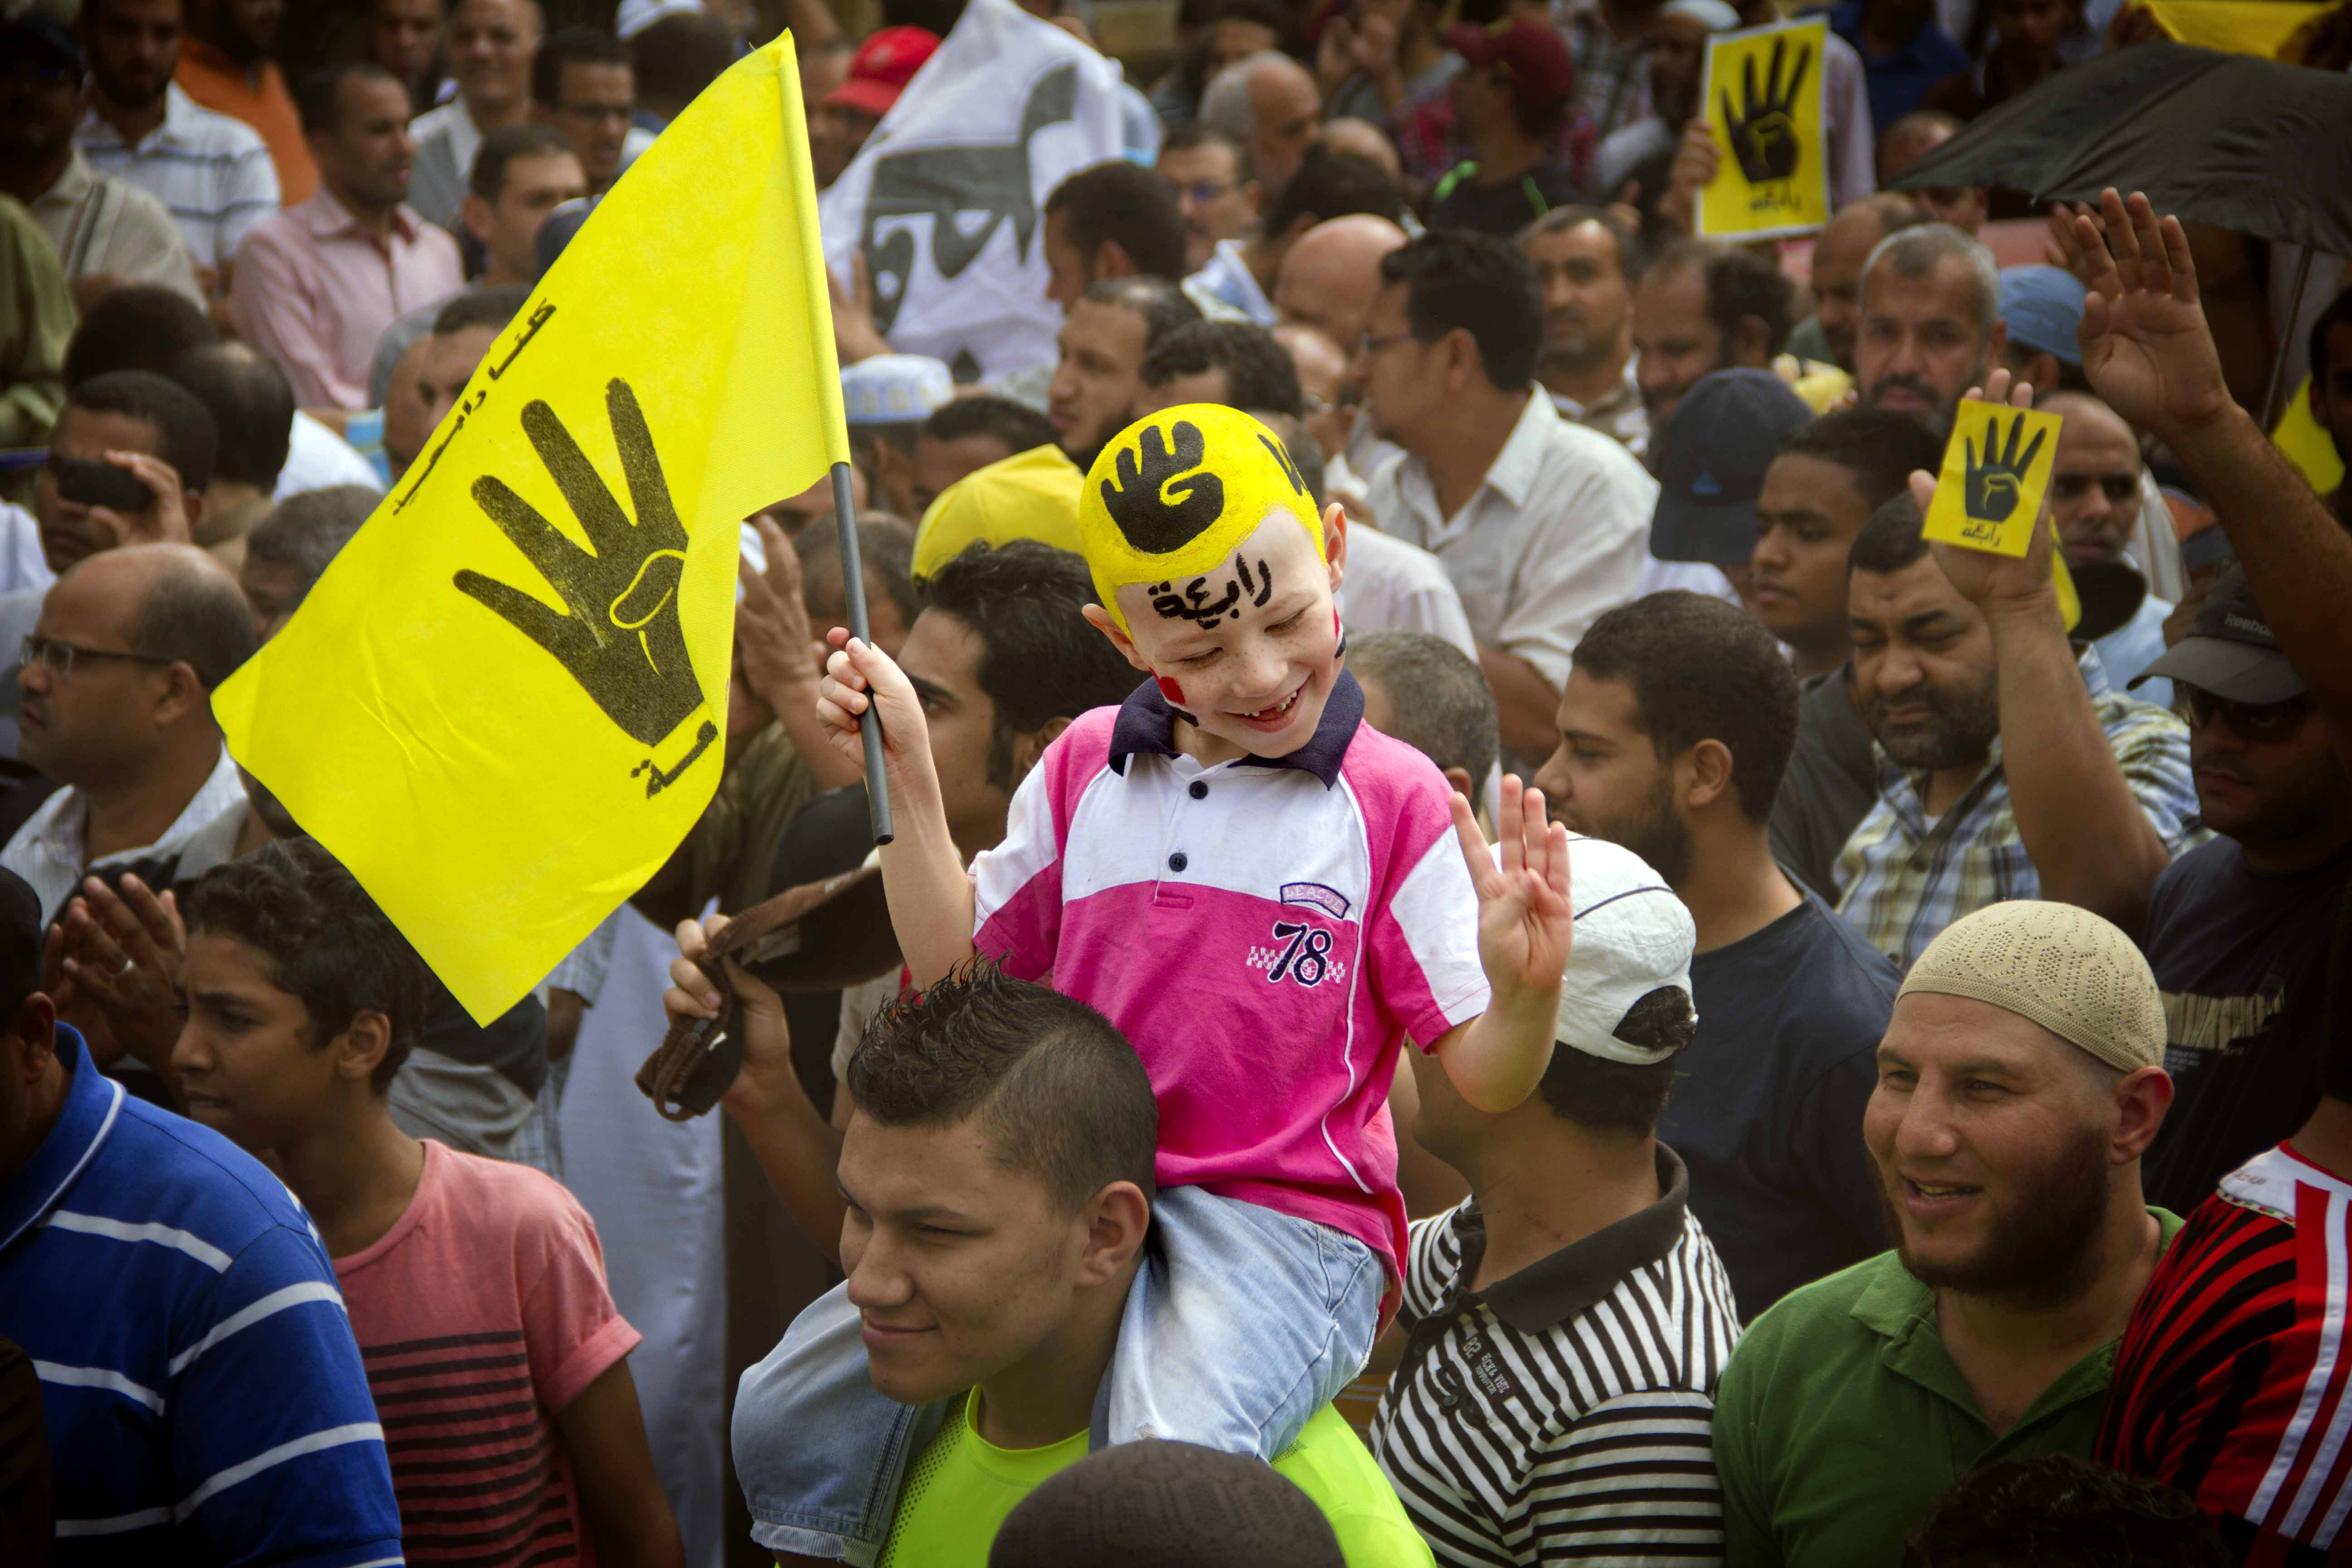 A young Egyptian boy participates in a demonstration by supporters of ousted President Mohammed Morsi in the Maadi district of Cairo, Egypt. A court in southern Egyptian has convicted nearly 530 supporters of ousted Islamist President Mohammed Morsi, sentencing them to death on charges of murdering a policeman and attacking police.